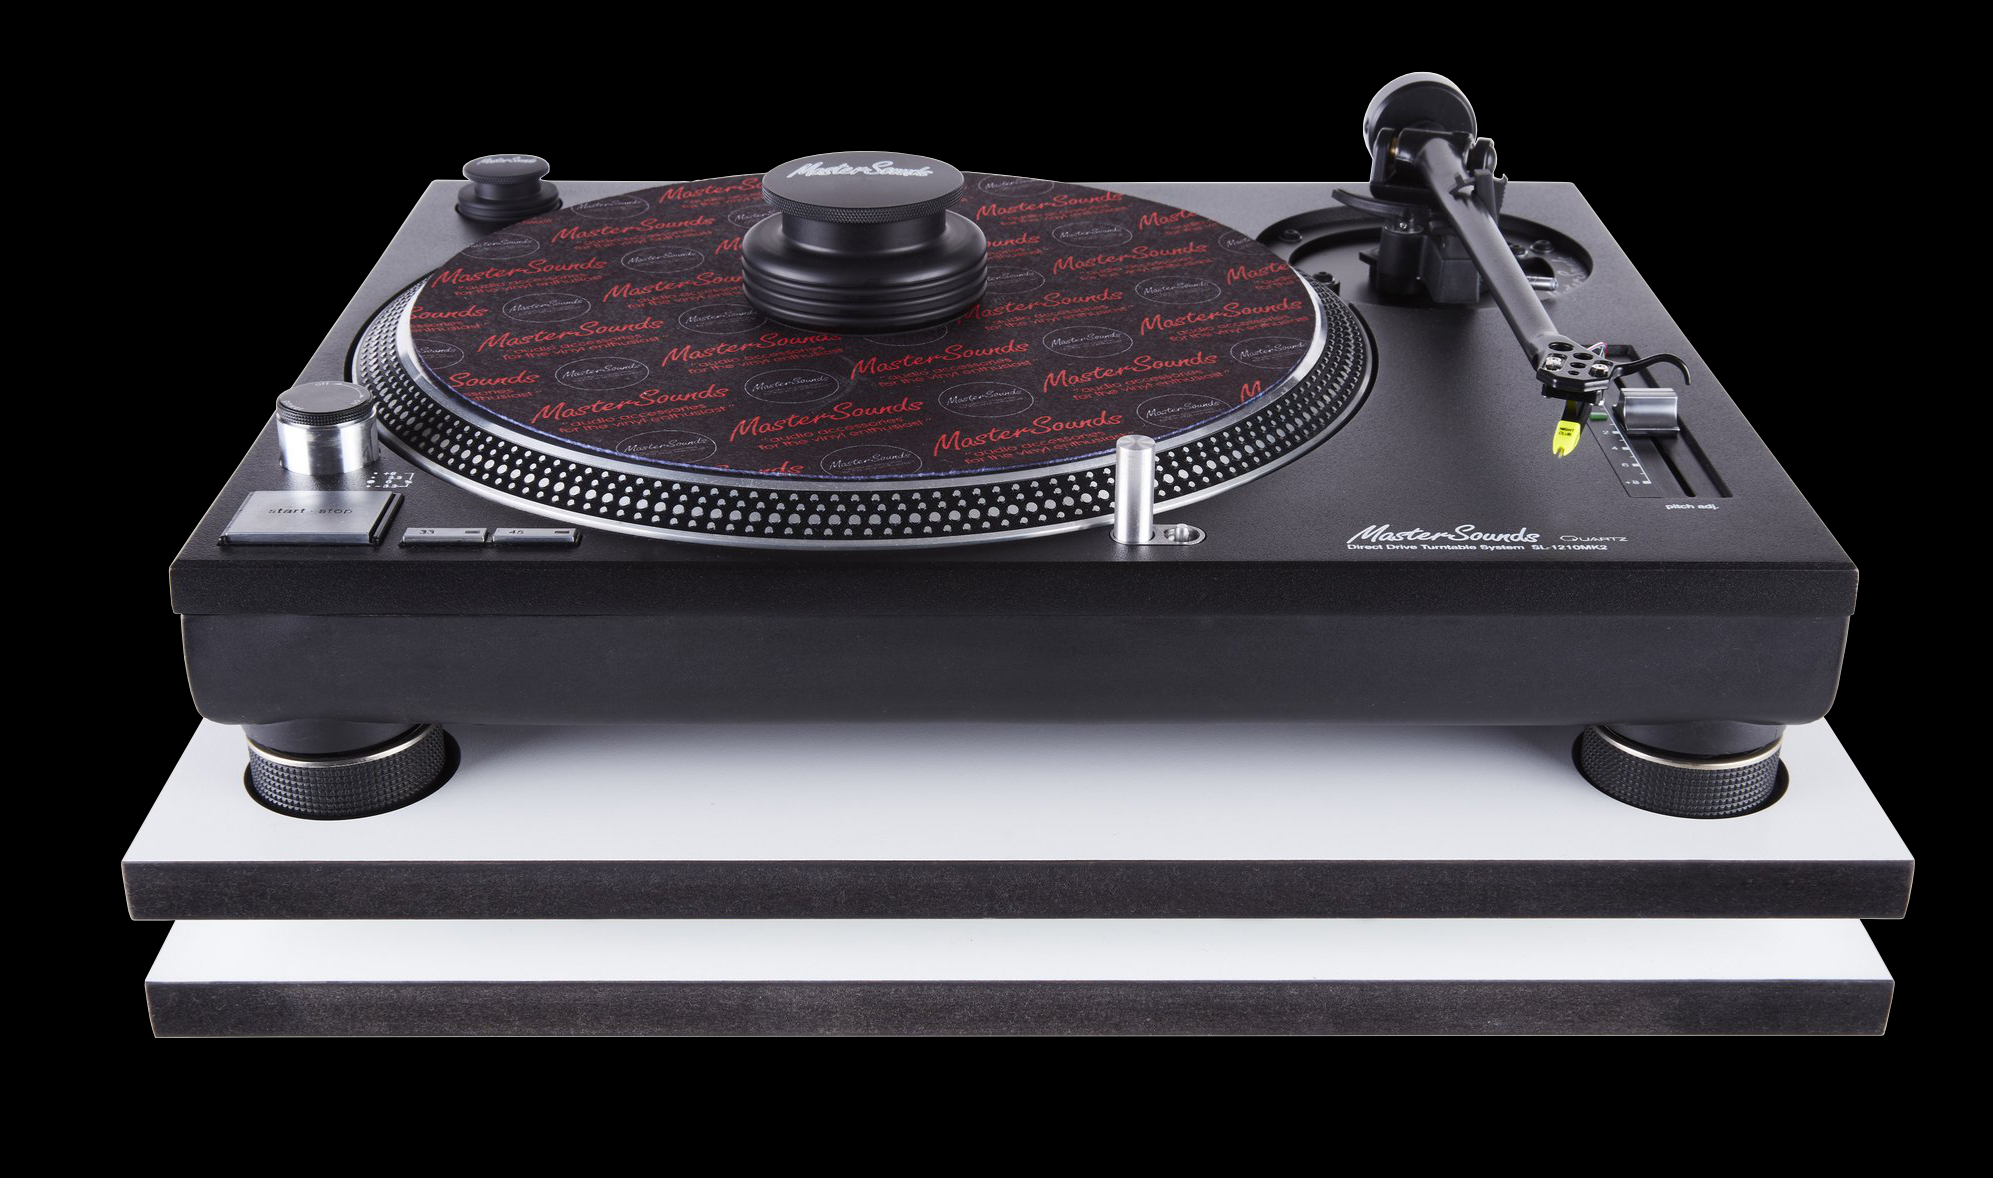 MasterSounds und TPI mit ultimativem Turntable-Isolator